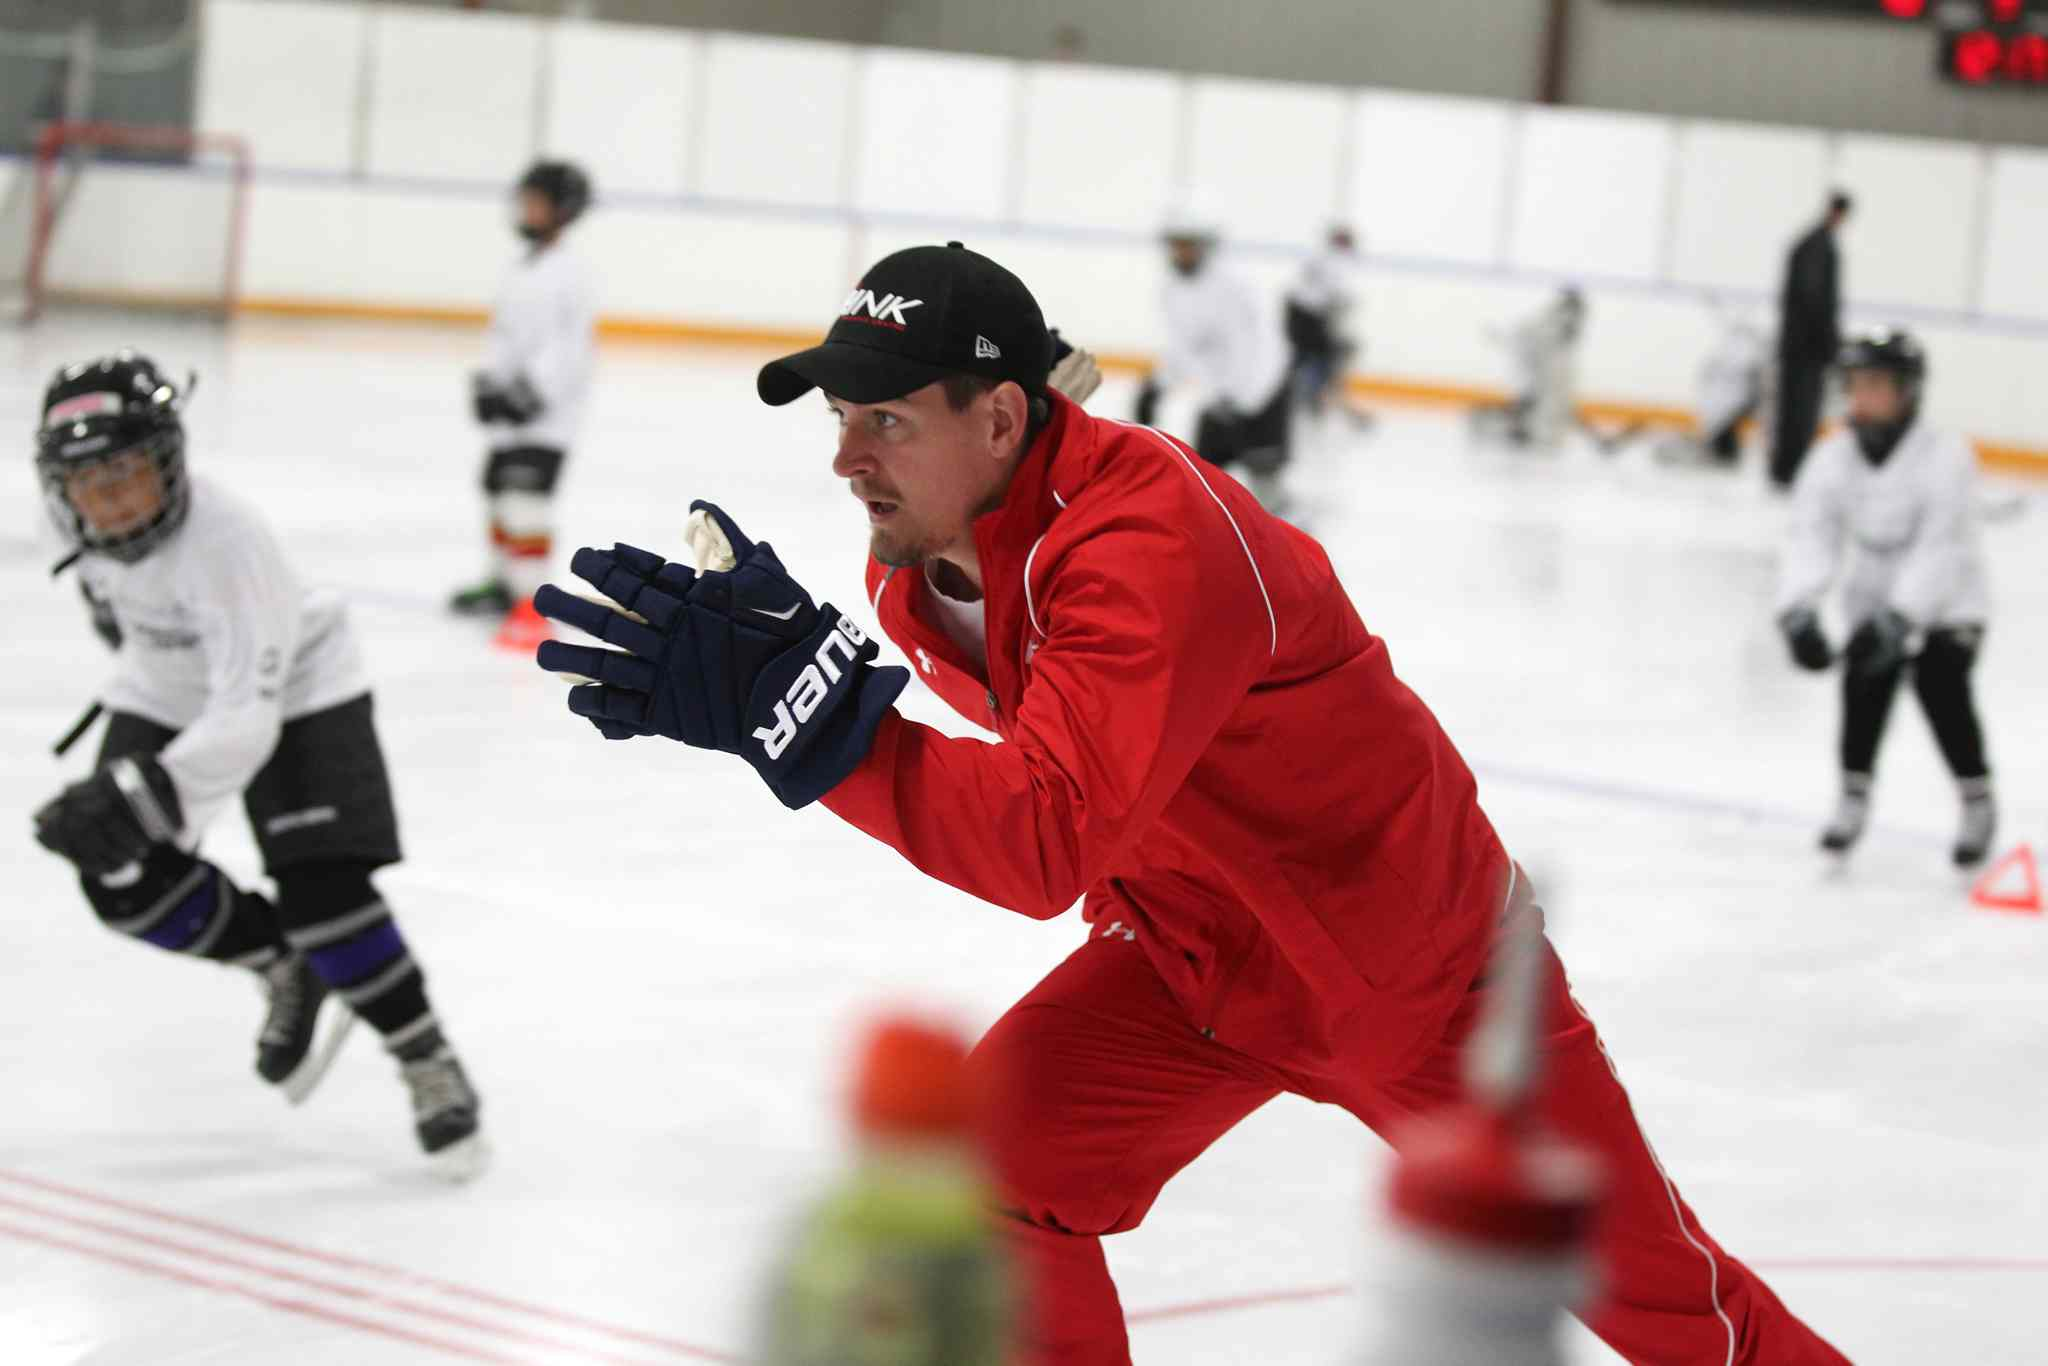 Mark Scheifele works with young hockey players on the ice.